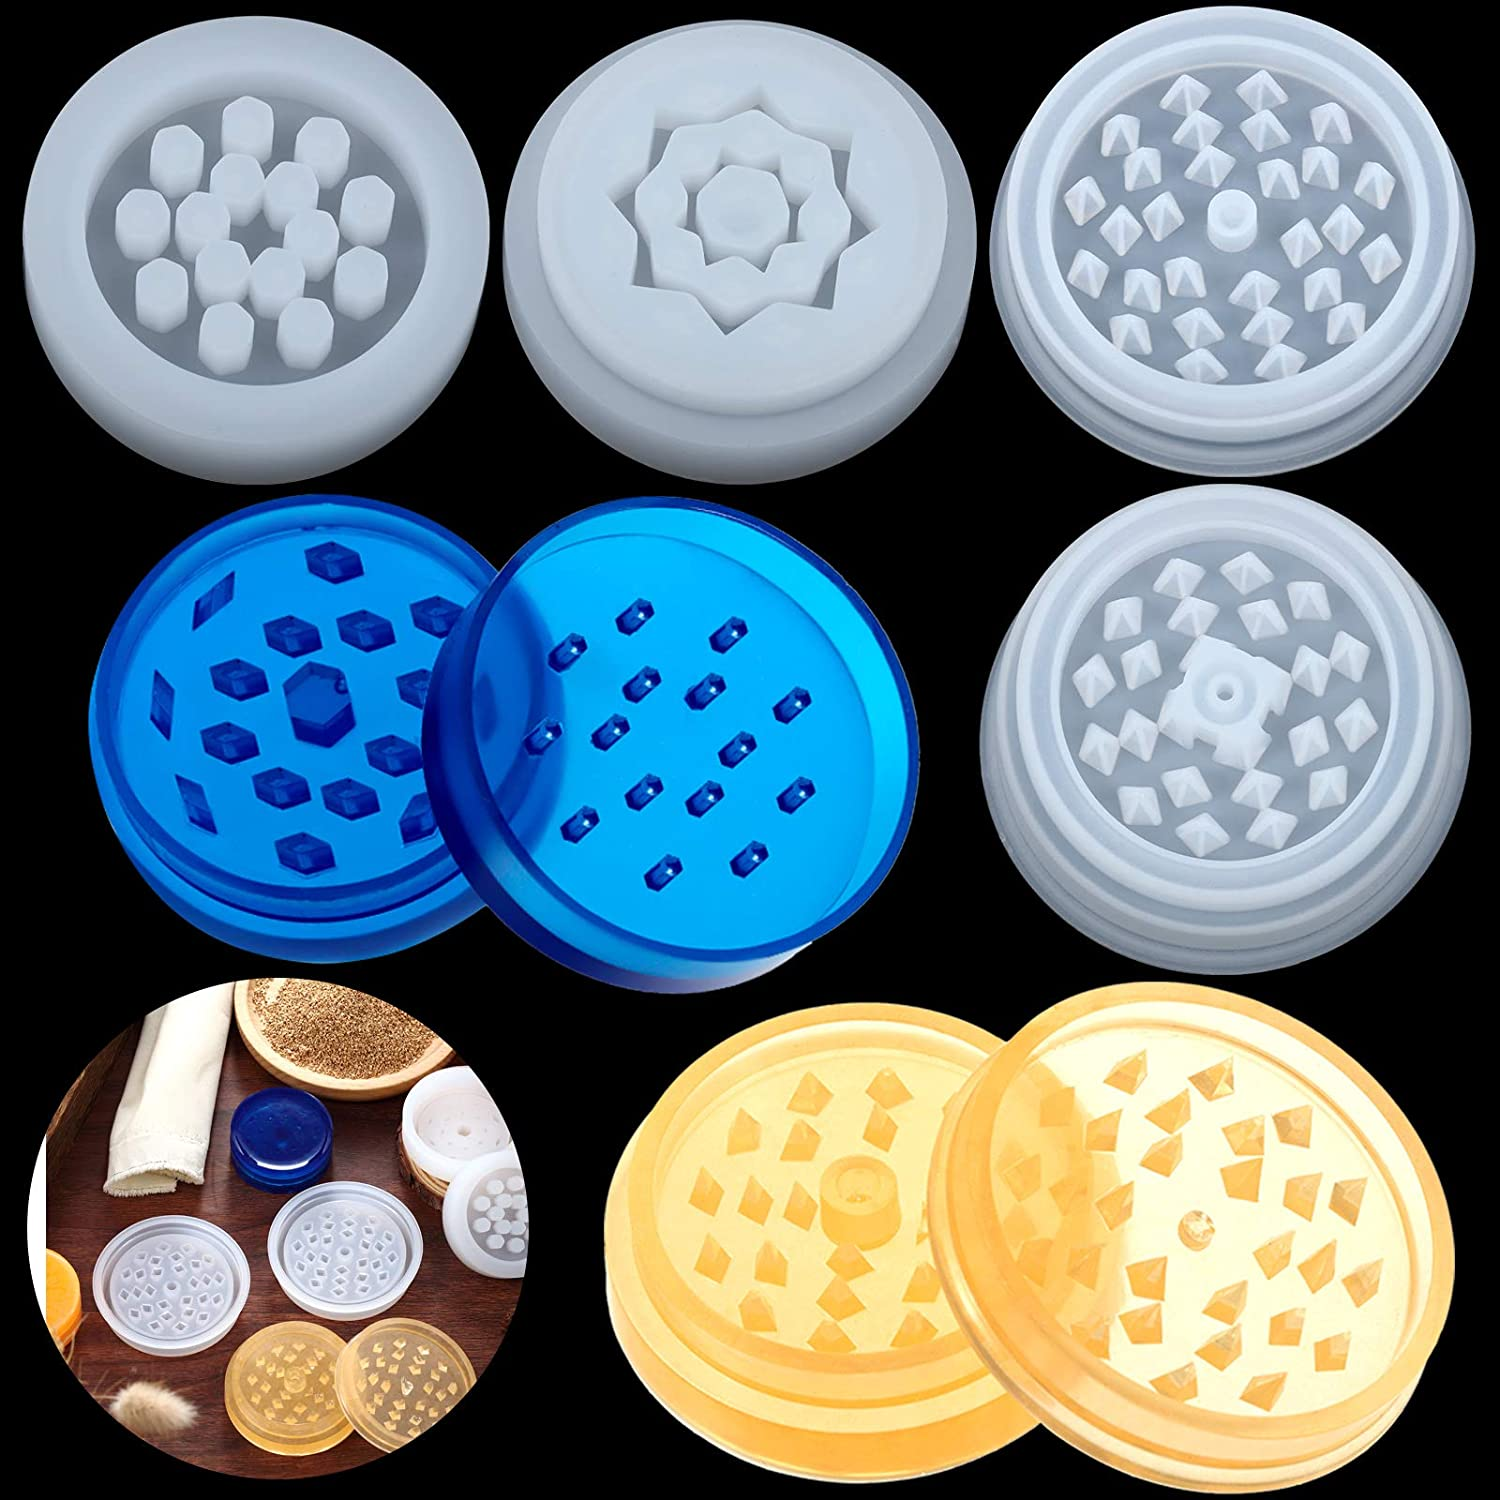 2 Cheap super special price Pairs Grinder Silicone Mold Crys Herb Spice In a popularity Resin